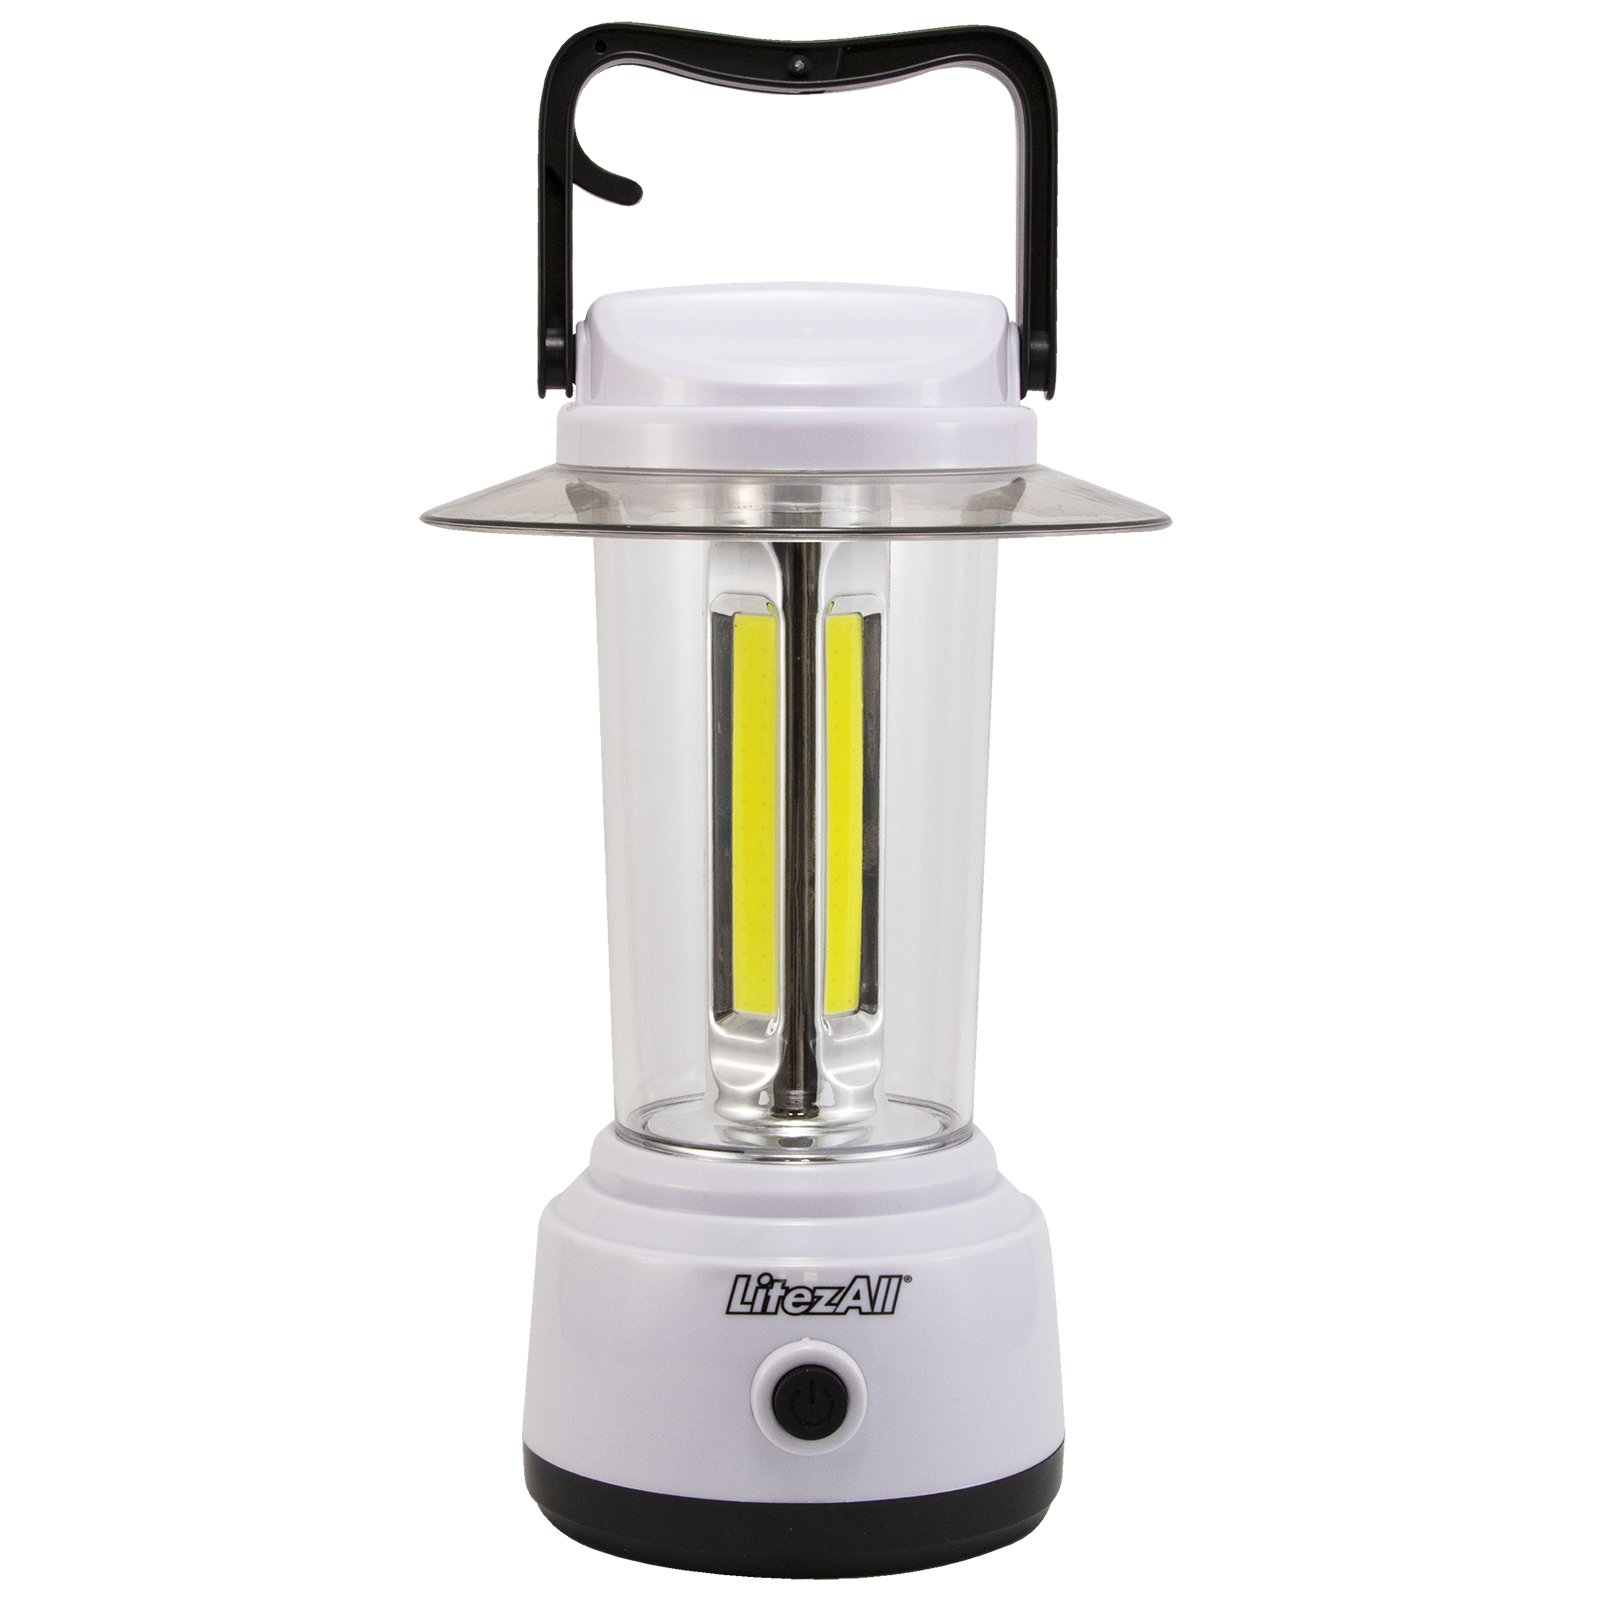 LitezAll 1750 Lumen COB LED Camping Lantern/Workshops, Home, Cabin, or Anywhere (Last to 115 hrs) 100% MFG Guarantee